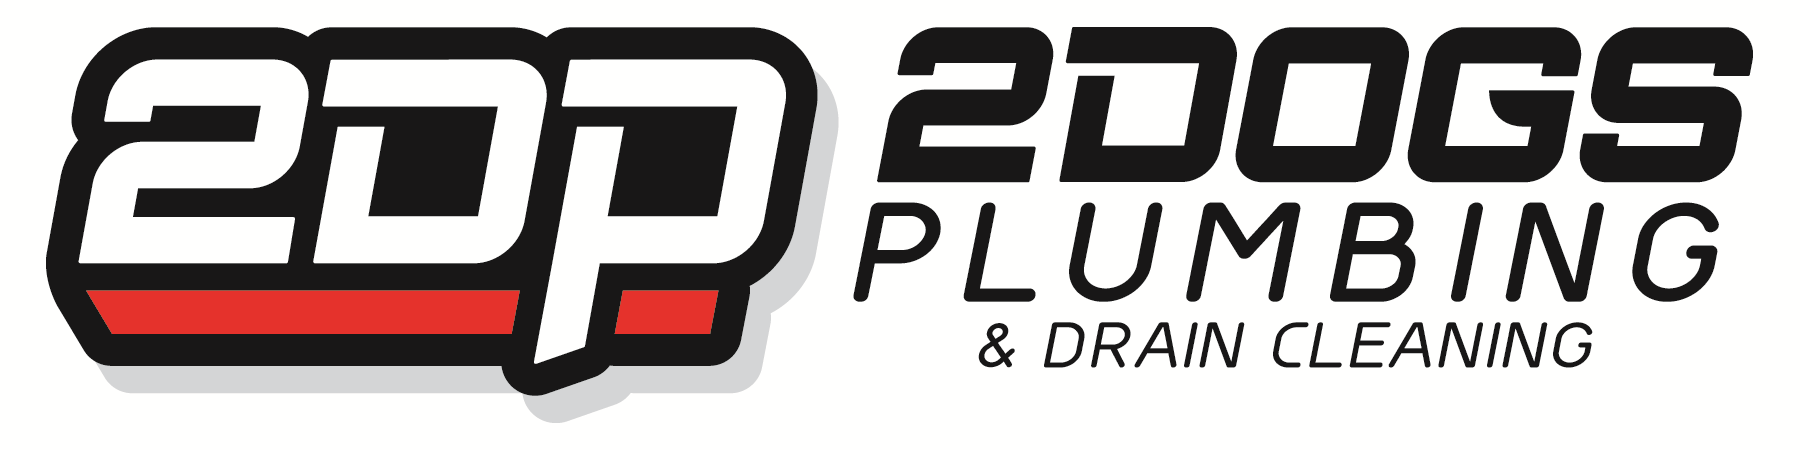 Two Dogs Plumbing & Drain Cleaning.